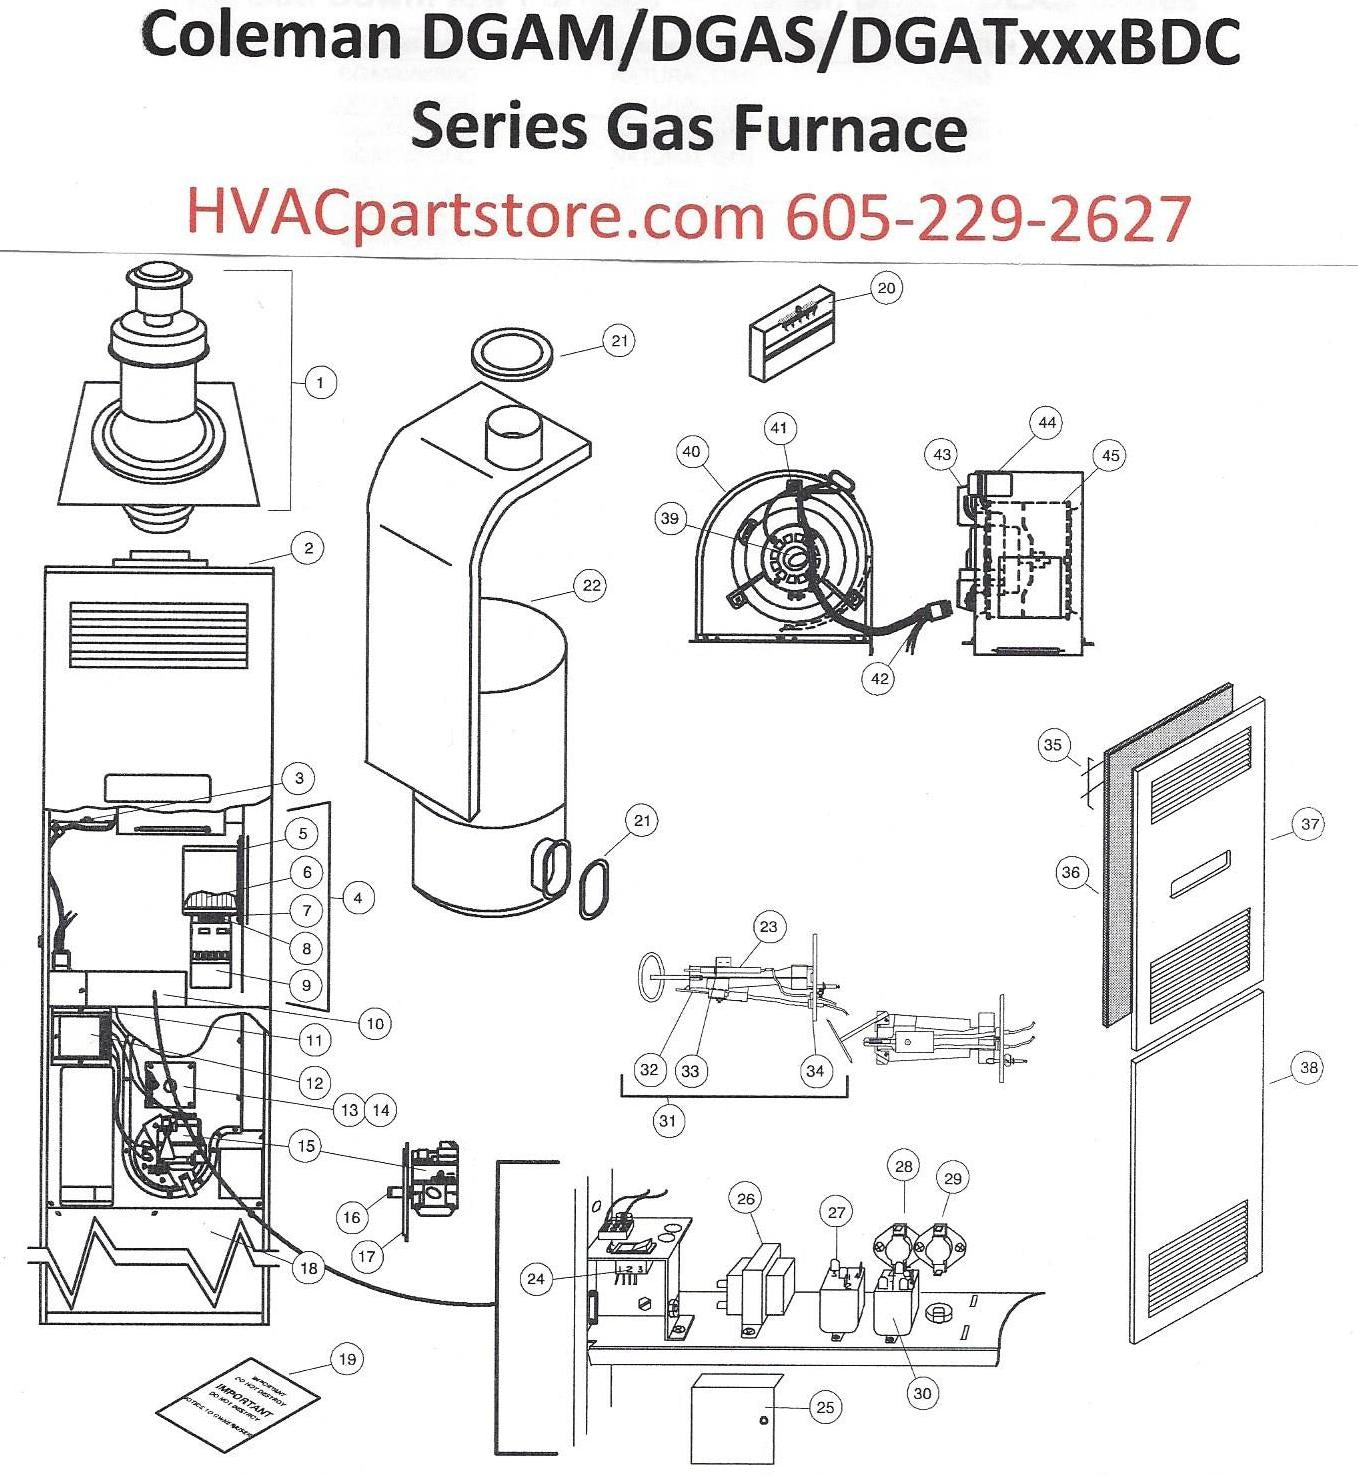 oil furnace manual or automatic